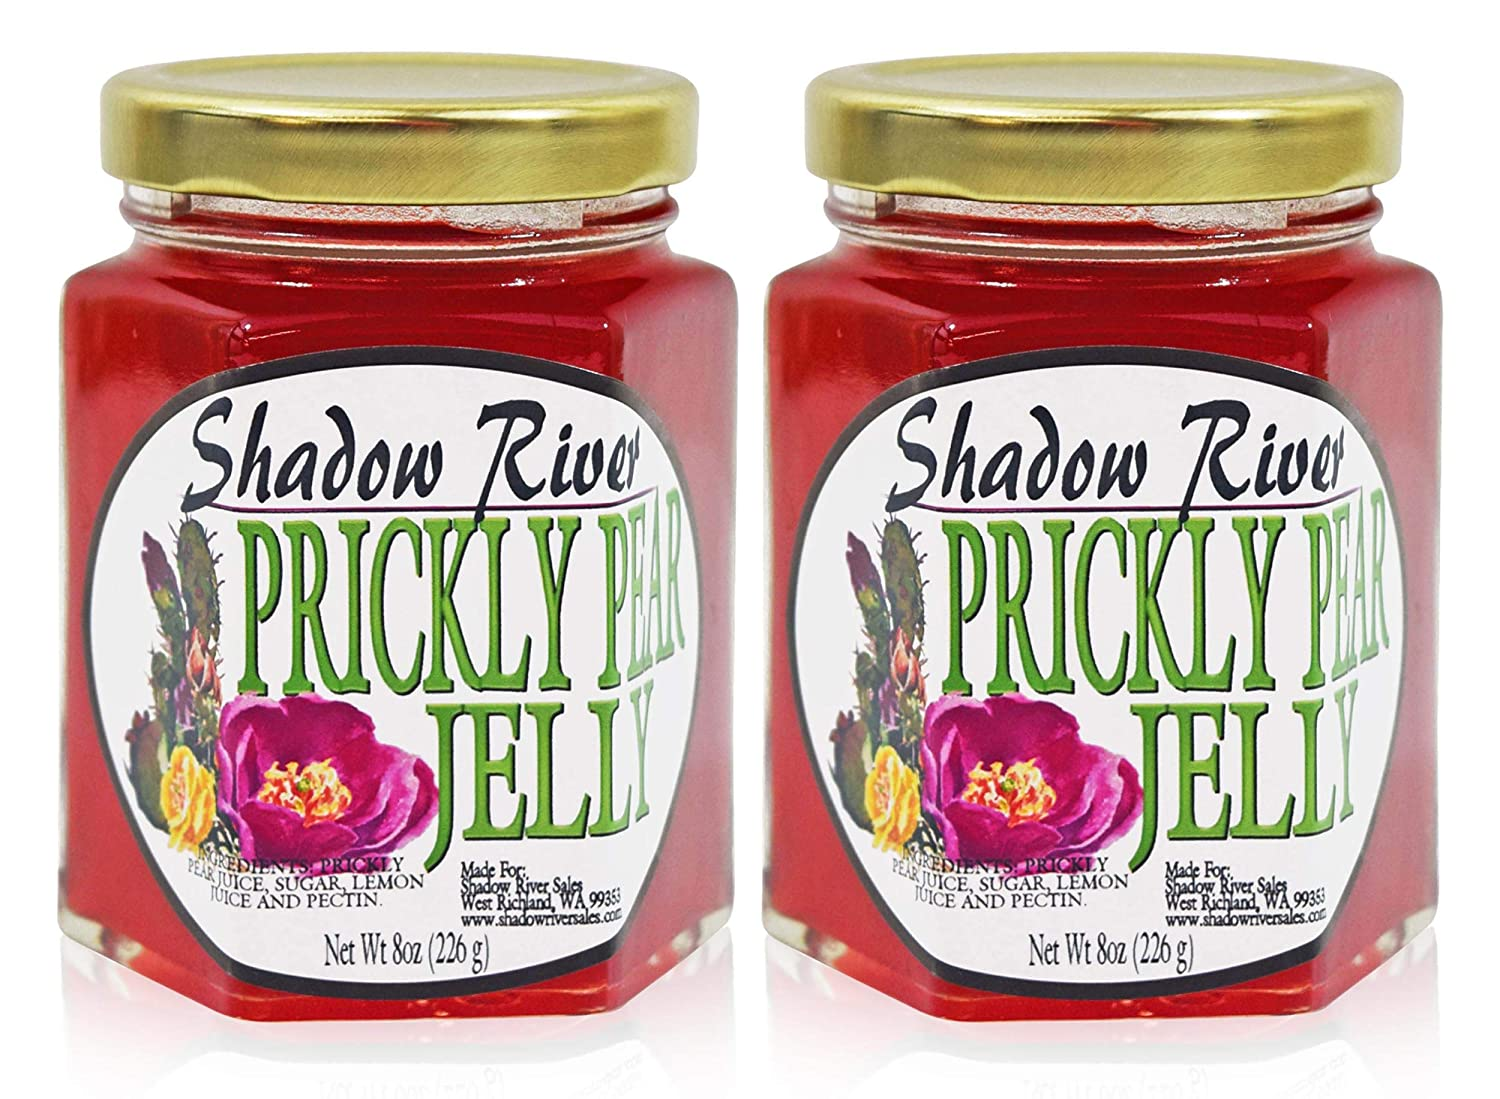 Amazon Com Shadow River Gourmet Prickly Pear Cactus Jelly Made From Real Cactus Fruit Juice 8 Oz Jar Pack Of 2 Grocery Gourmet Food,How Long To Cook Meatloaf 2 Pounds